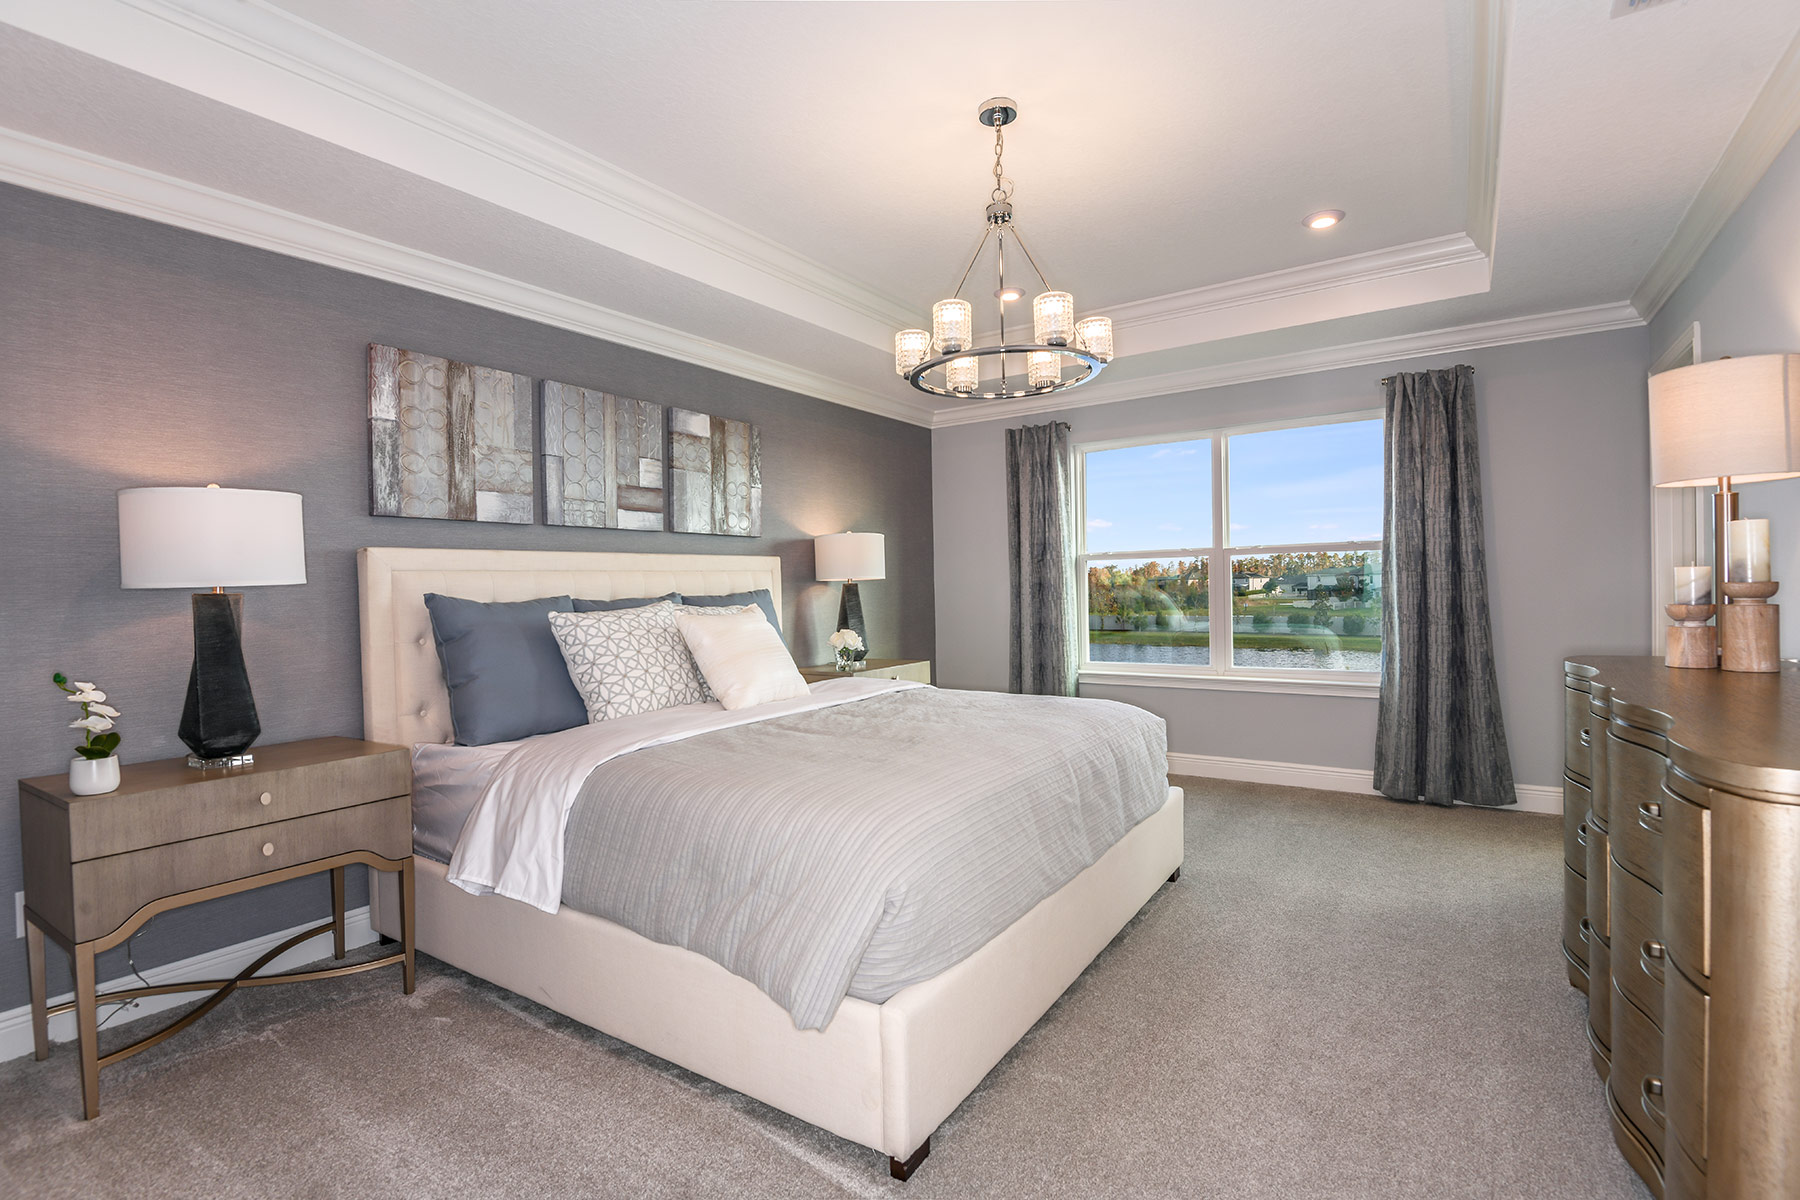 Parkview at Long Lake Ranch Bedroom in Lutz Florida by Mattamy Homes